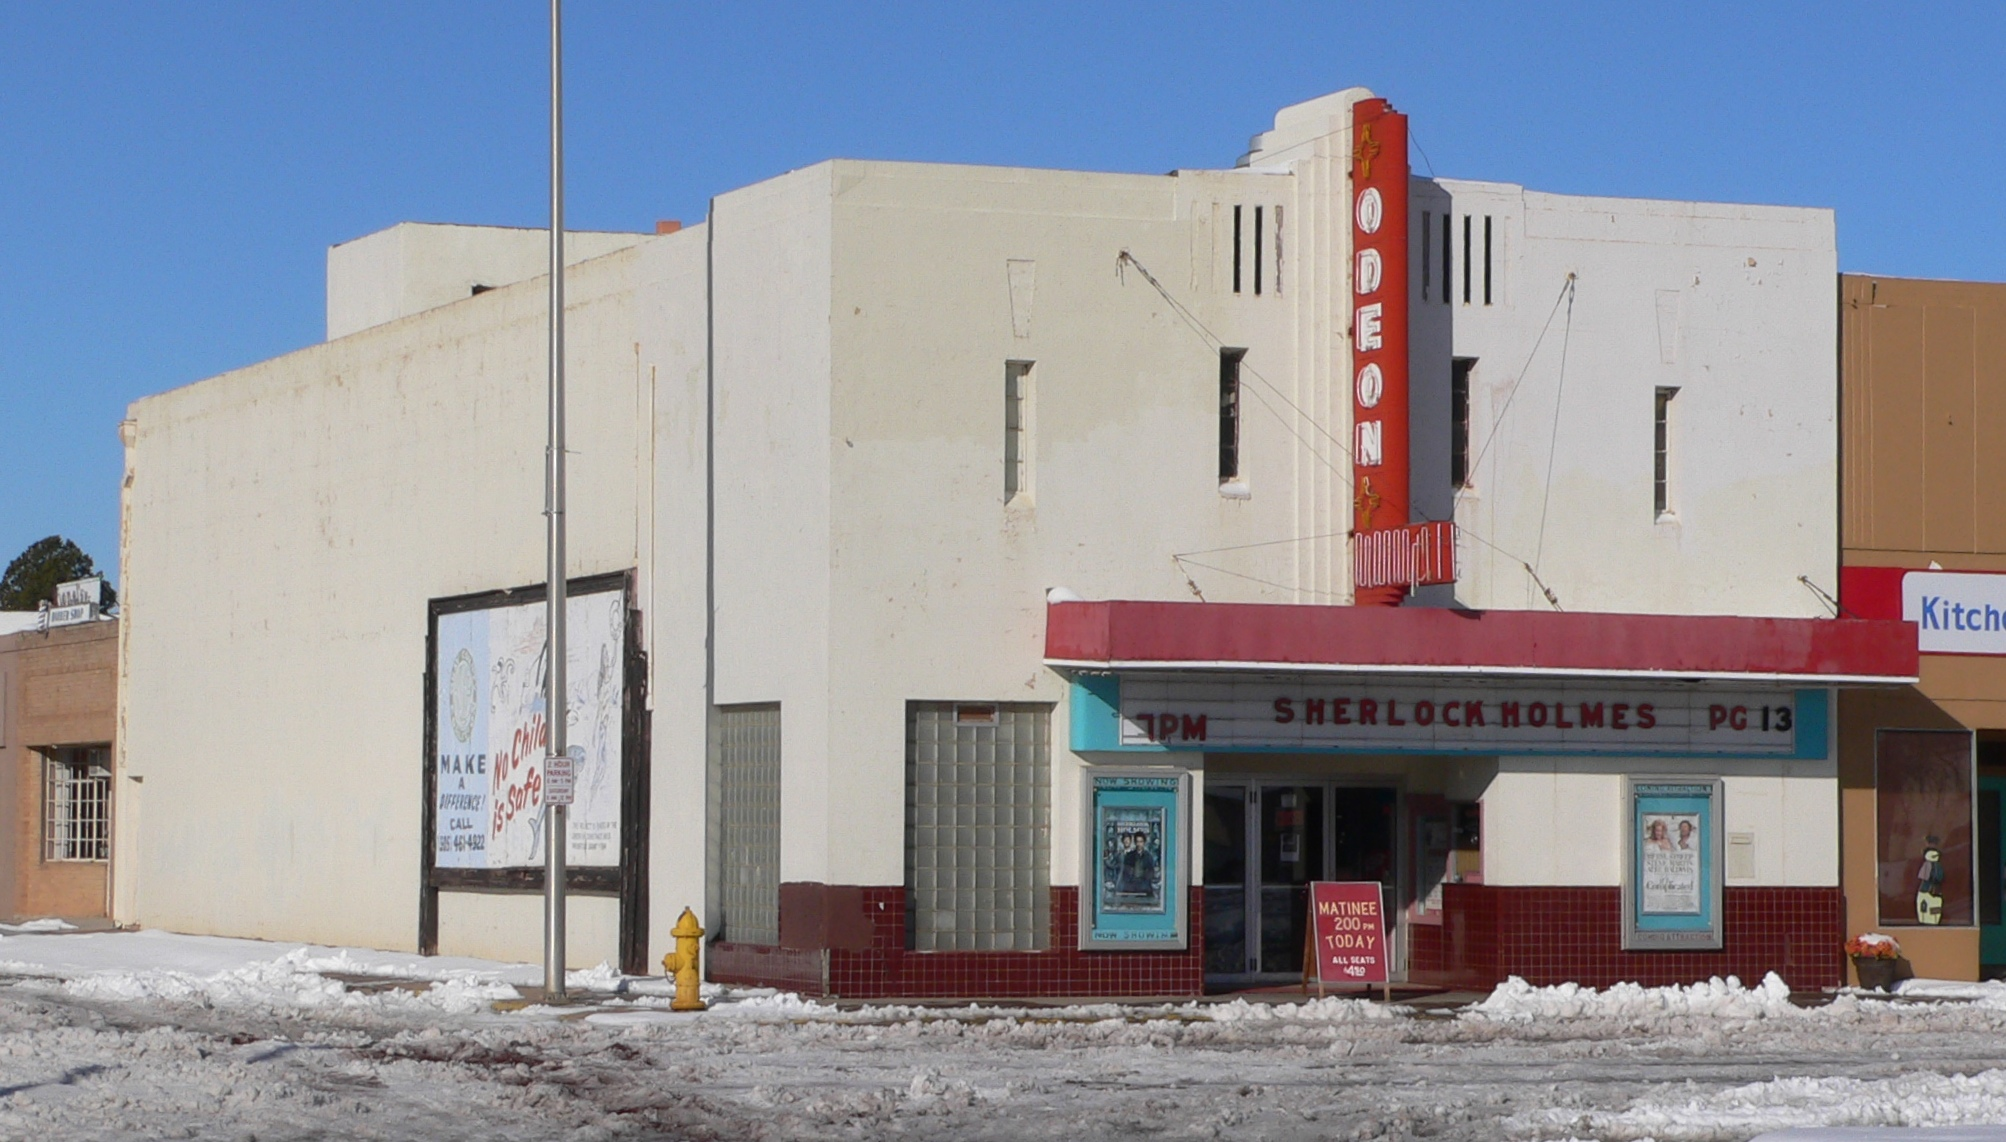 Tucumcari's Odeon Theatre, which received funding in 2015